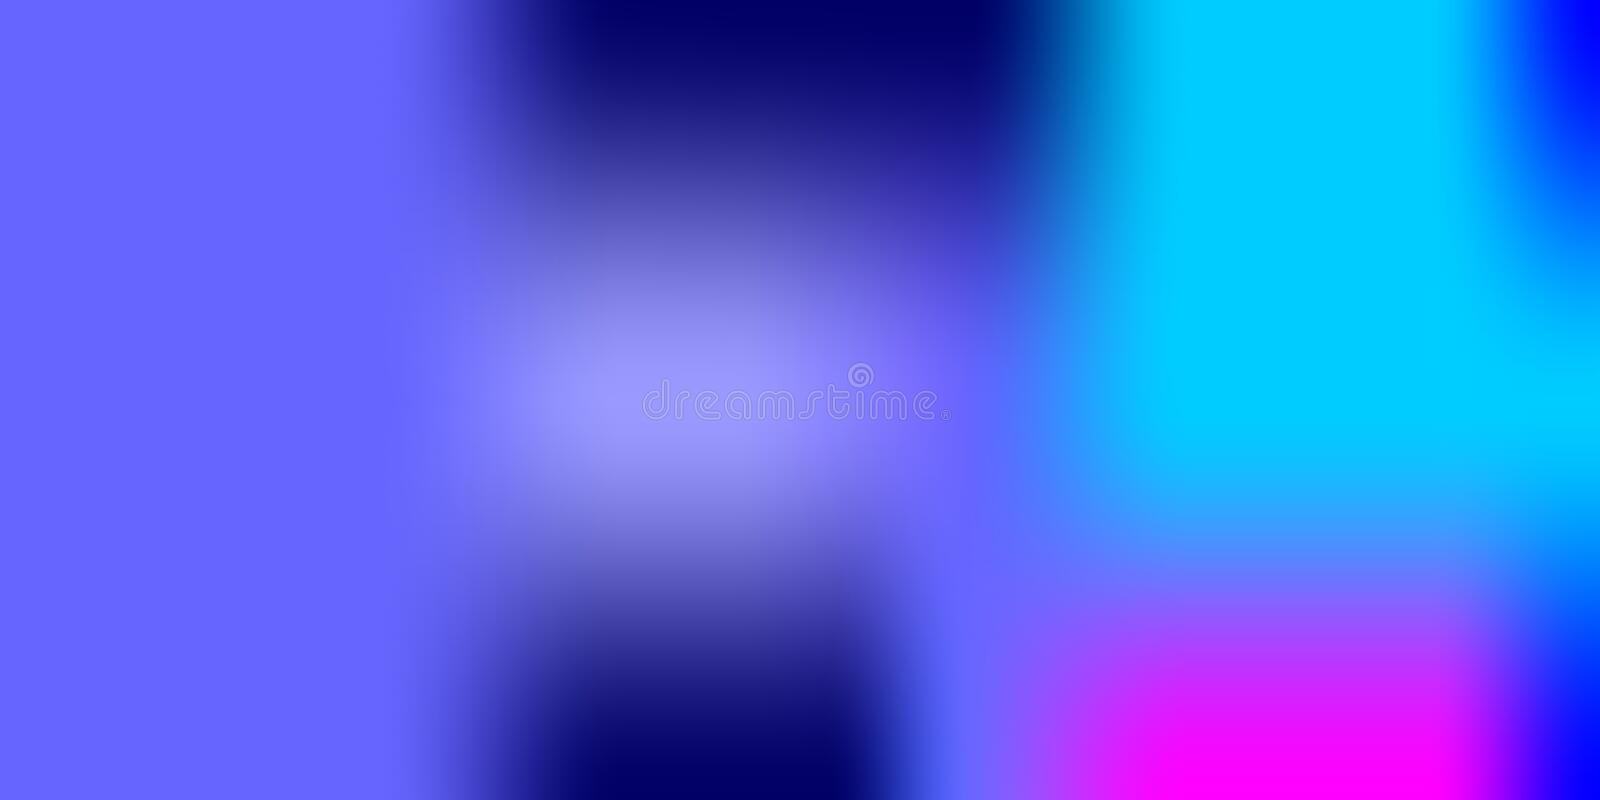 Colorful blur abstract background vector design, colorful blurred shaded background, vivid color vector illustration. vector illustration